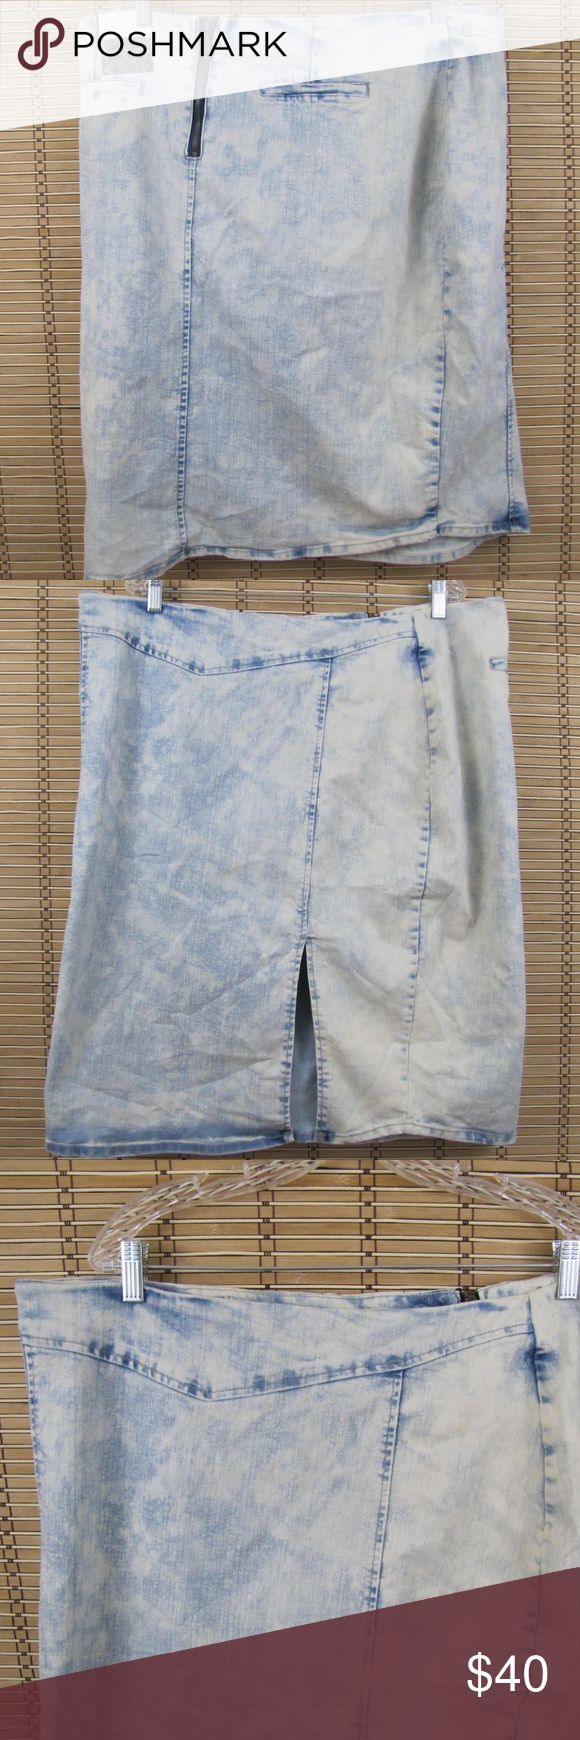 """NWT Montana Jeans Acid Wash Front Slit Skirt Inventory #D143  This item is in Excellent Condition!  Acid Wash, front slit, back zipper  Cotton, Polyester & Elastane  Women's Sz 3X  Waist: 40""""  Length: 26""""  Flare:  22"""" wide  Slit:  10"""" Montana Jeans Skirts Midi"""